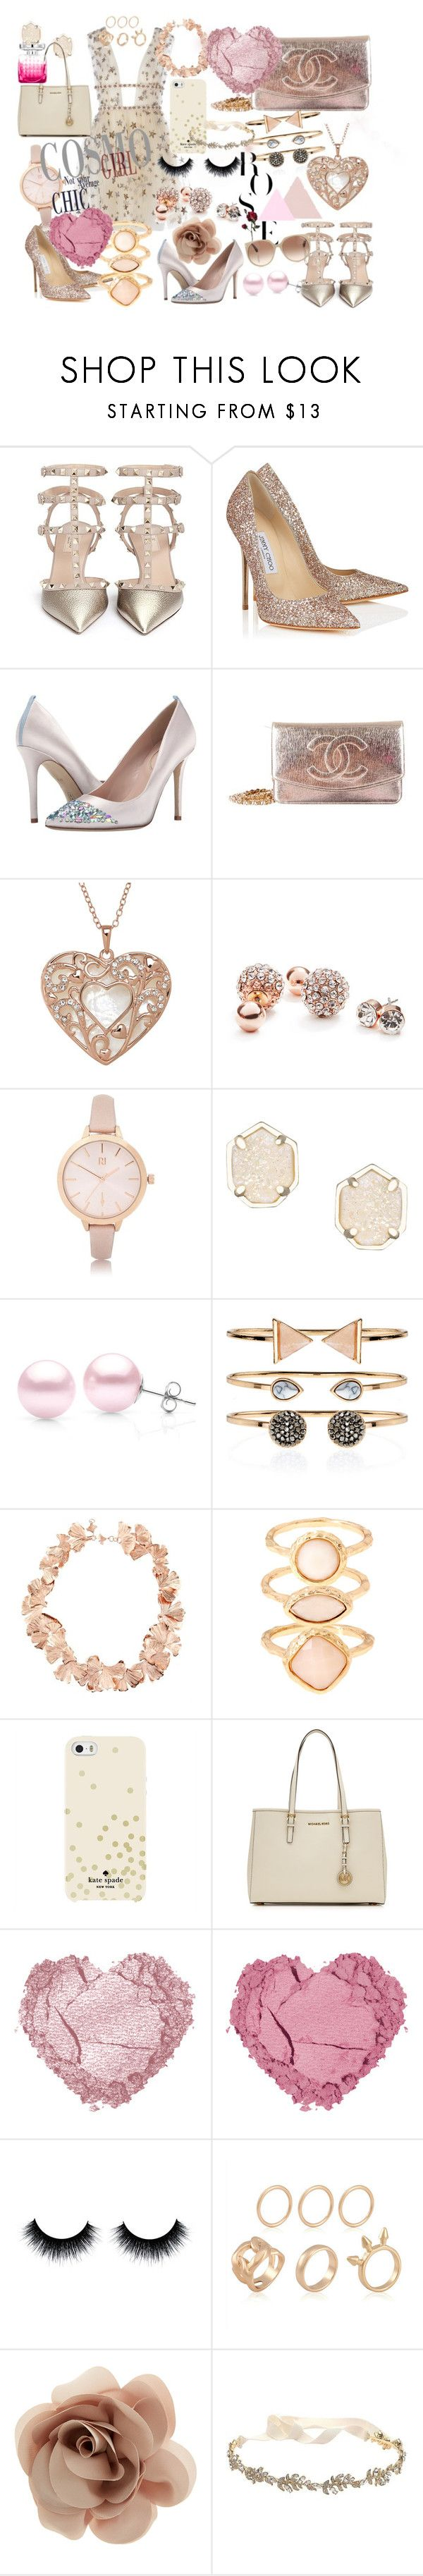 """Rose Gold Christmas"" by thcleanelegance on Polyvore featuring Valentino, Jimmy Choo, SJP, Chanel, GUESS, River Island, Kendra Scott, Suzy Levian, Accessorize and Aurélie Bidermann"